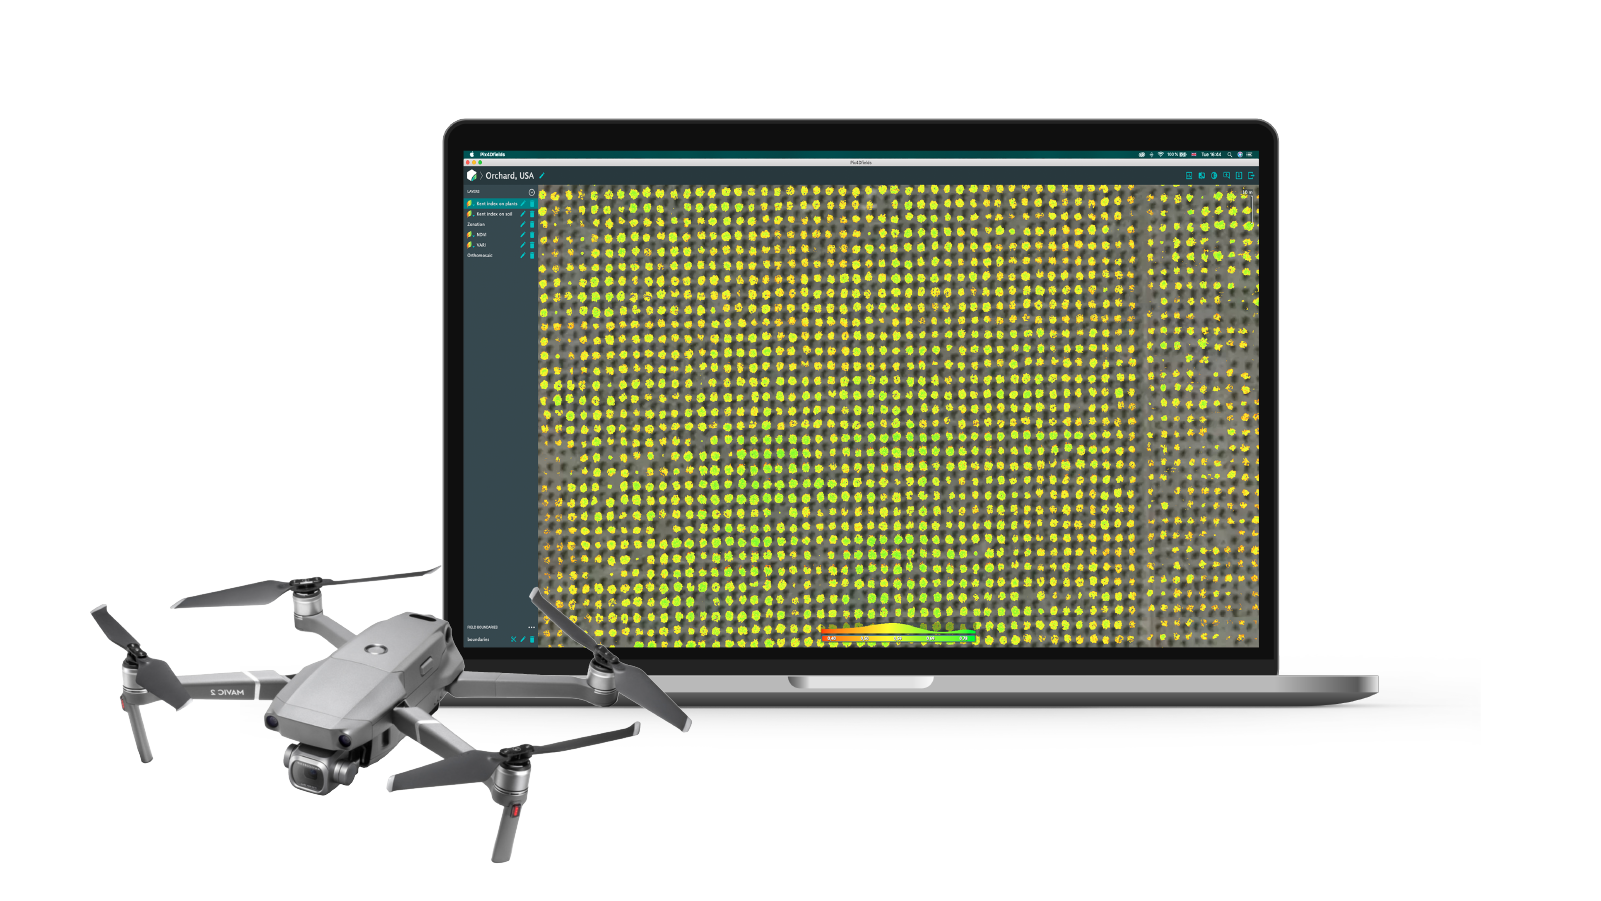 All in one agriculture mapping solution with Pix4dfields software and Mavic 2 Pro drone with RGB sensor